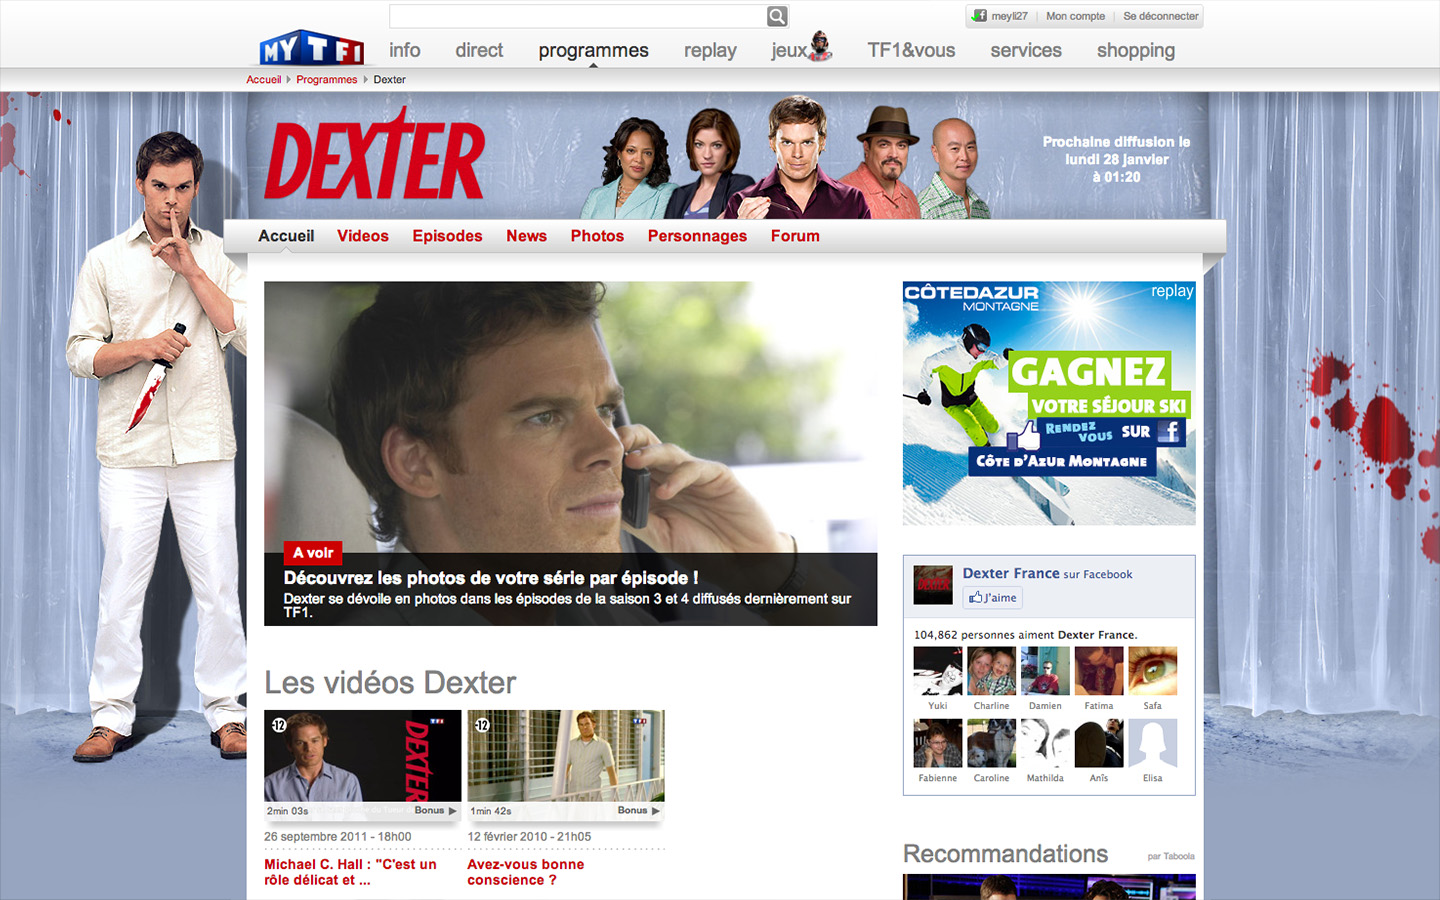 Dexter - Website 2